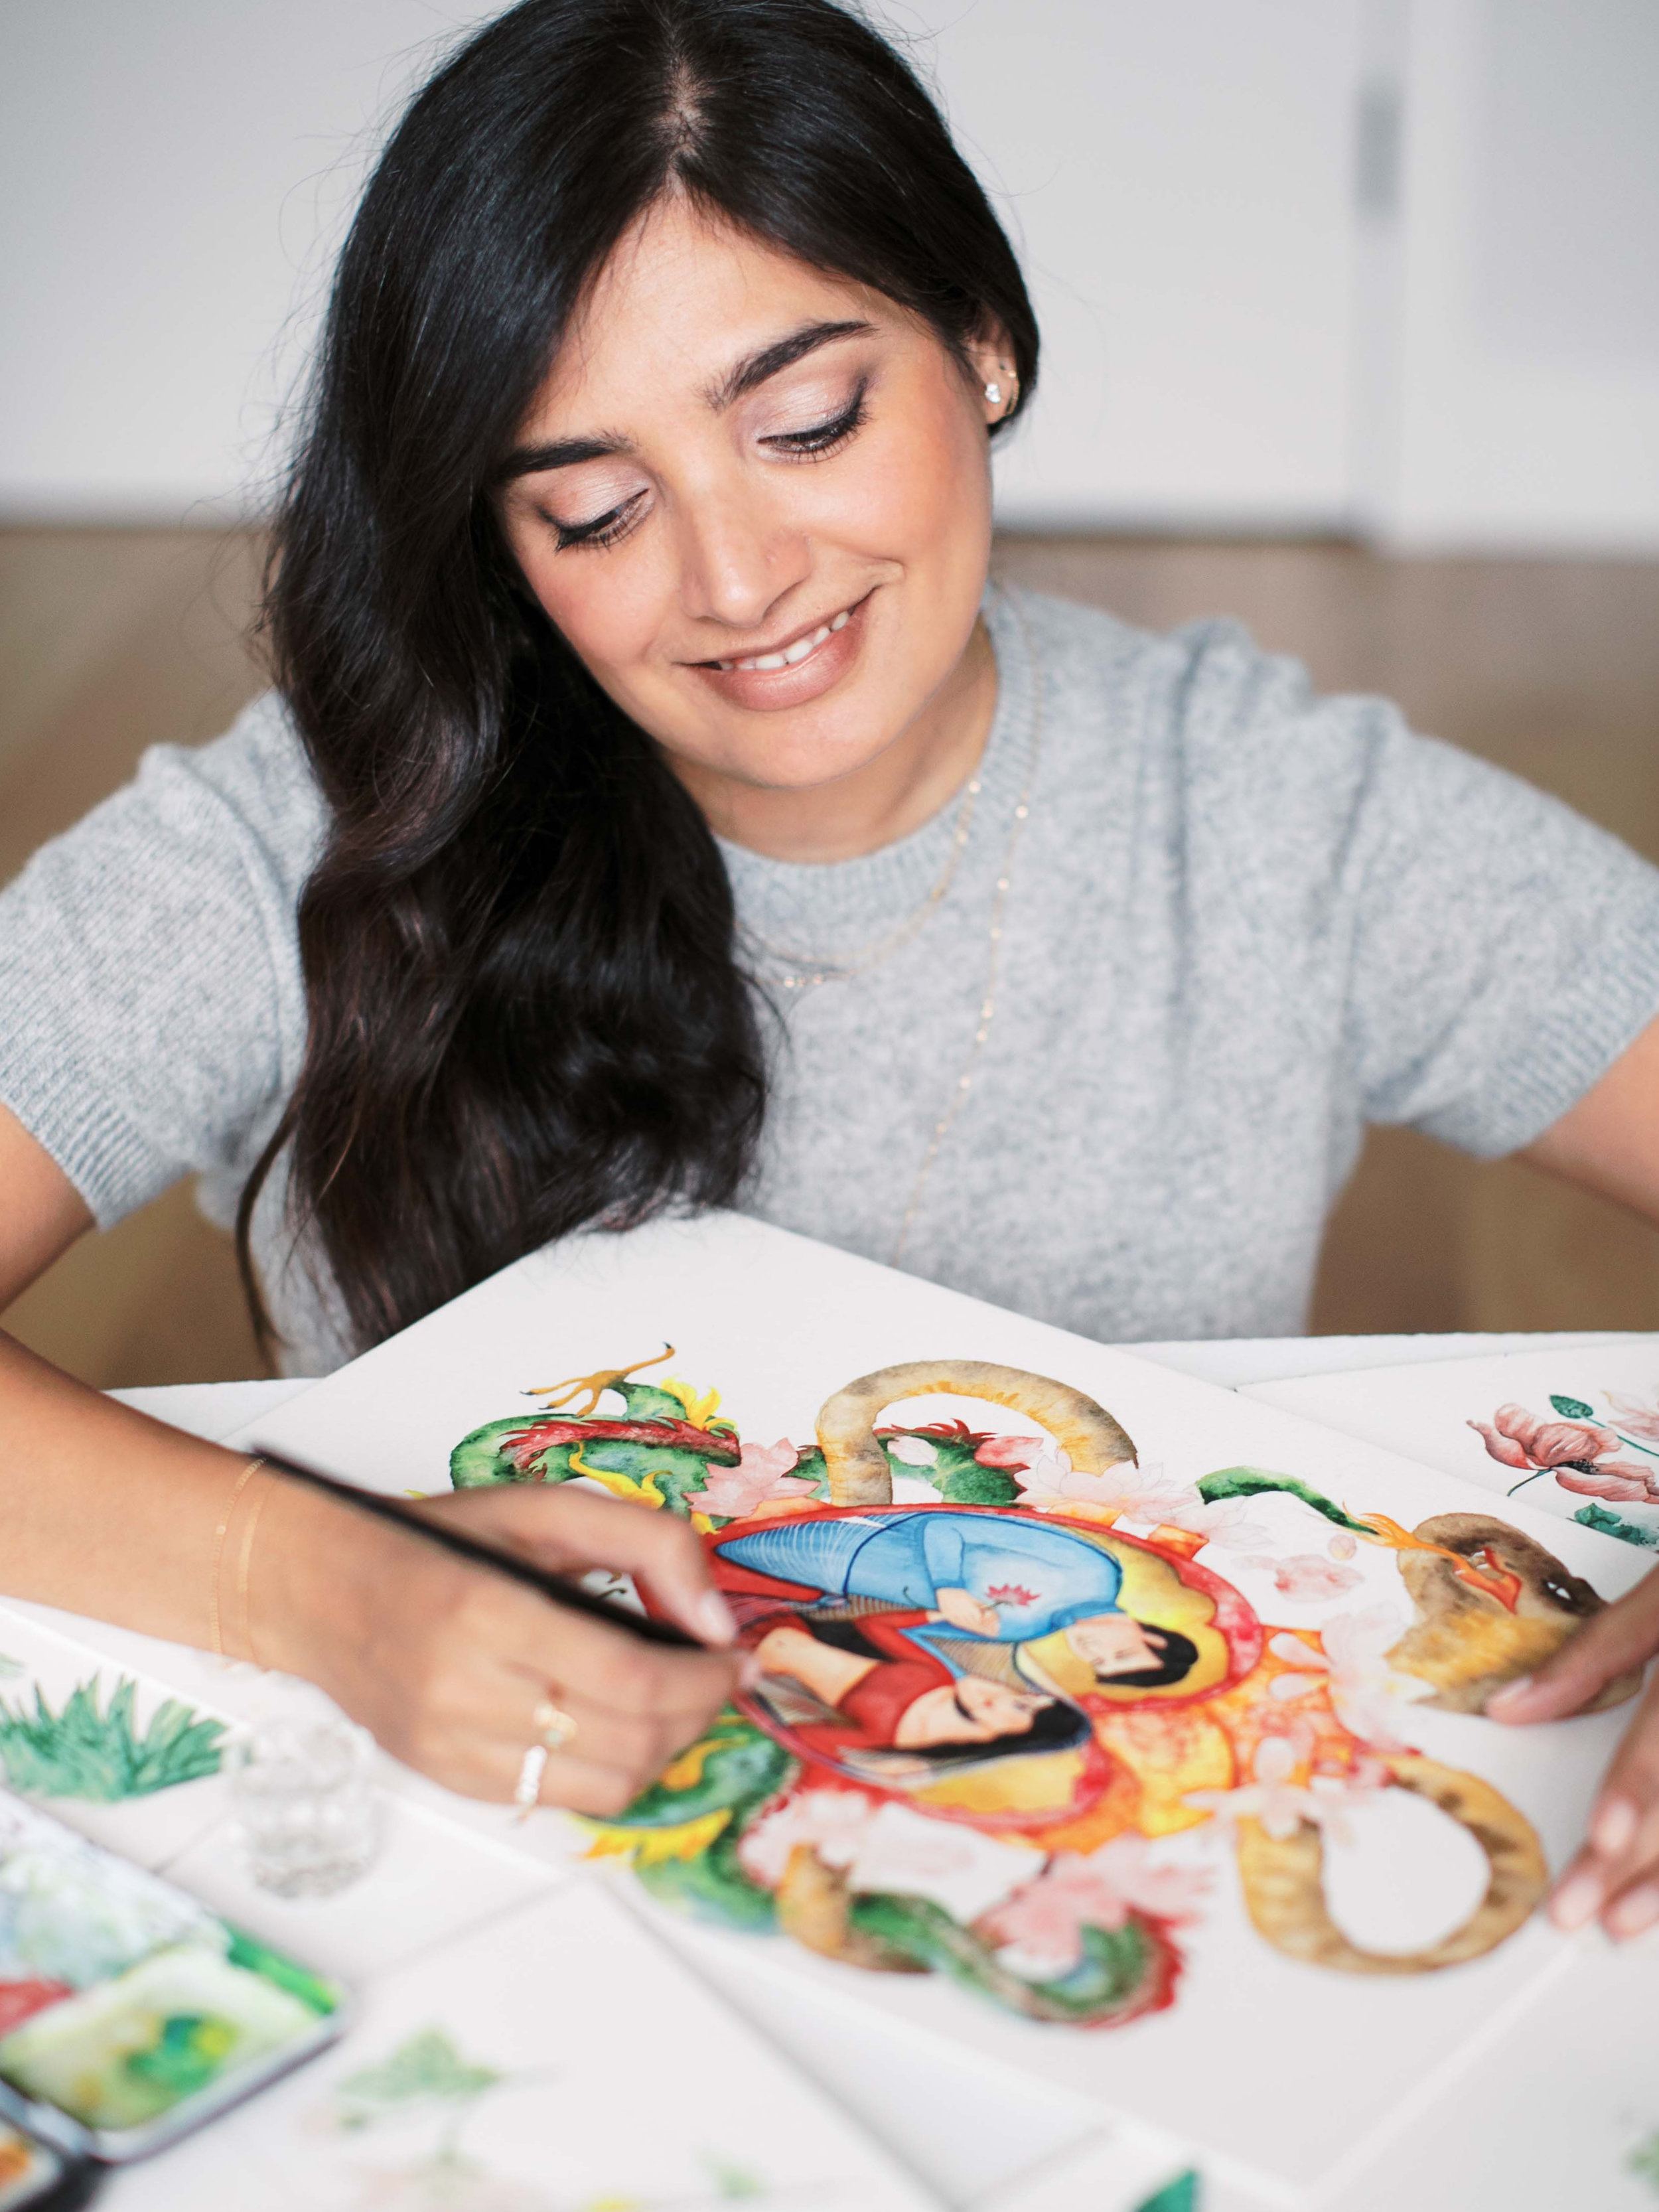 - Formally trained as a graphic designer, Vidhi combines hand painted watercolors, original illustrations, calligraphy and graphic design to make work that is personalized and timeless - something you will treasure for years to come.